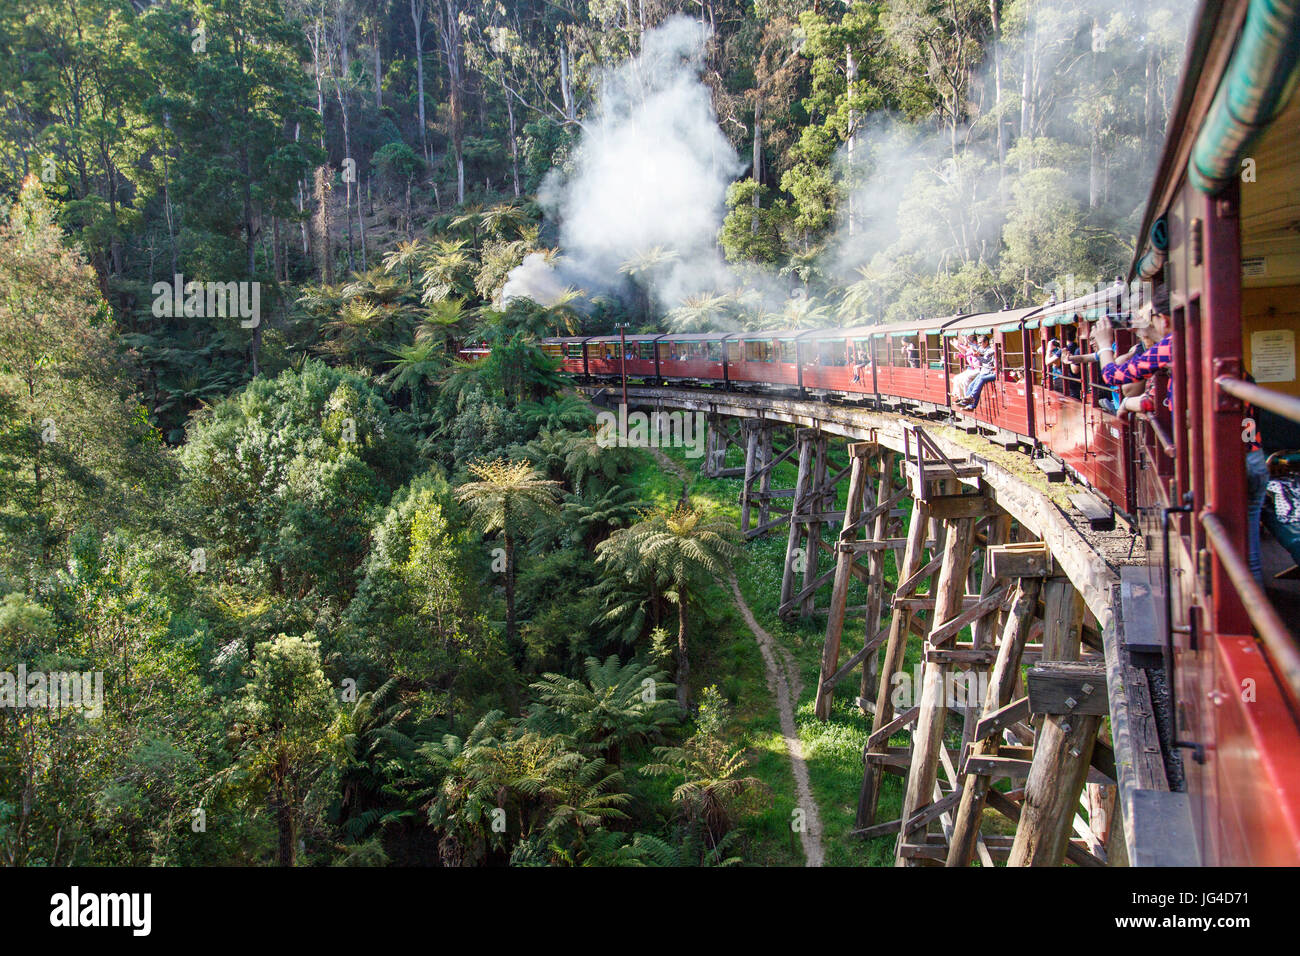 Puffing Billy Steam Train - Melbourne - Stock Image